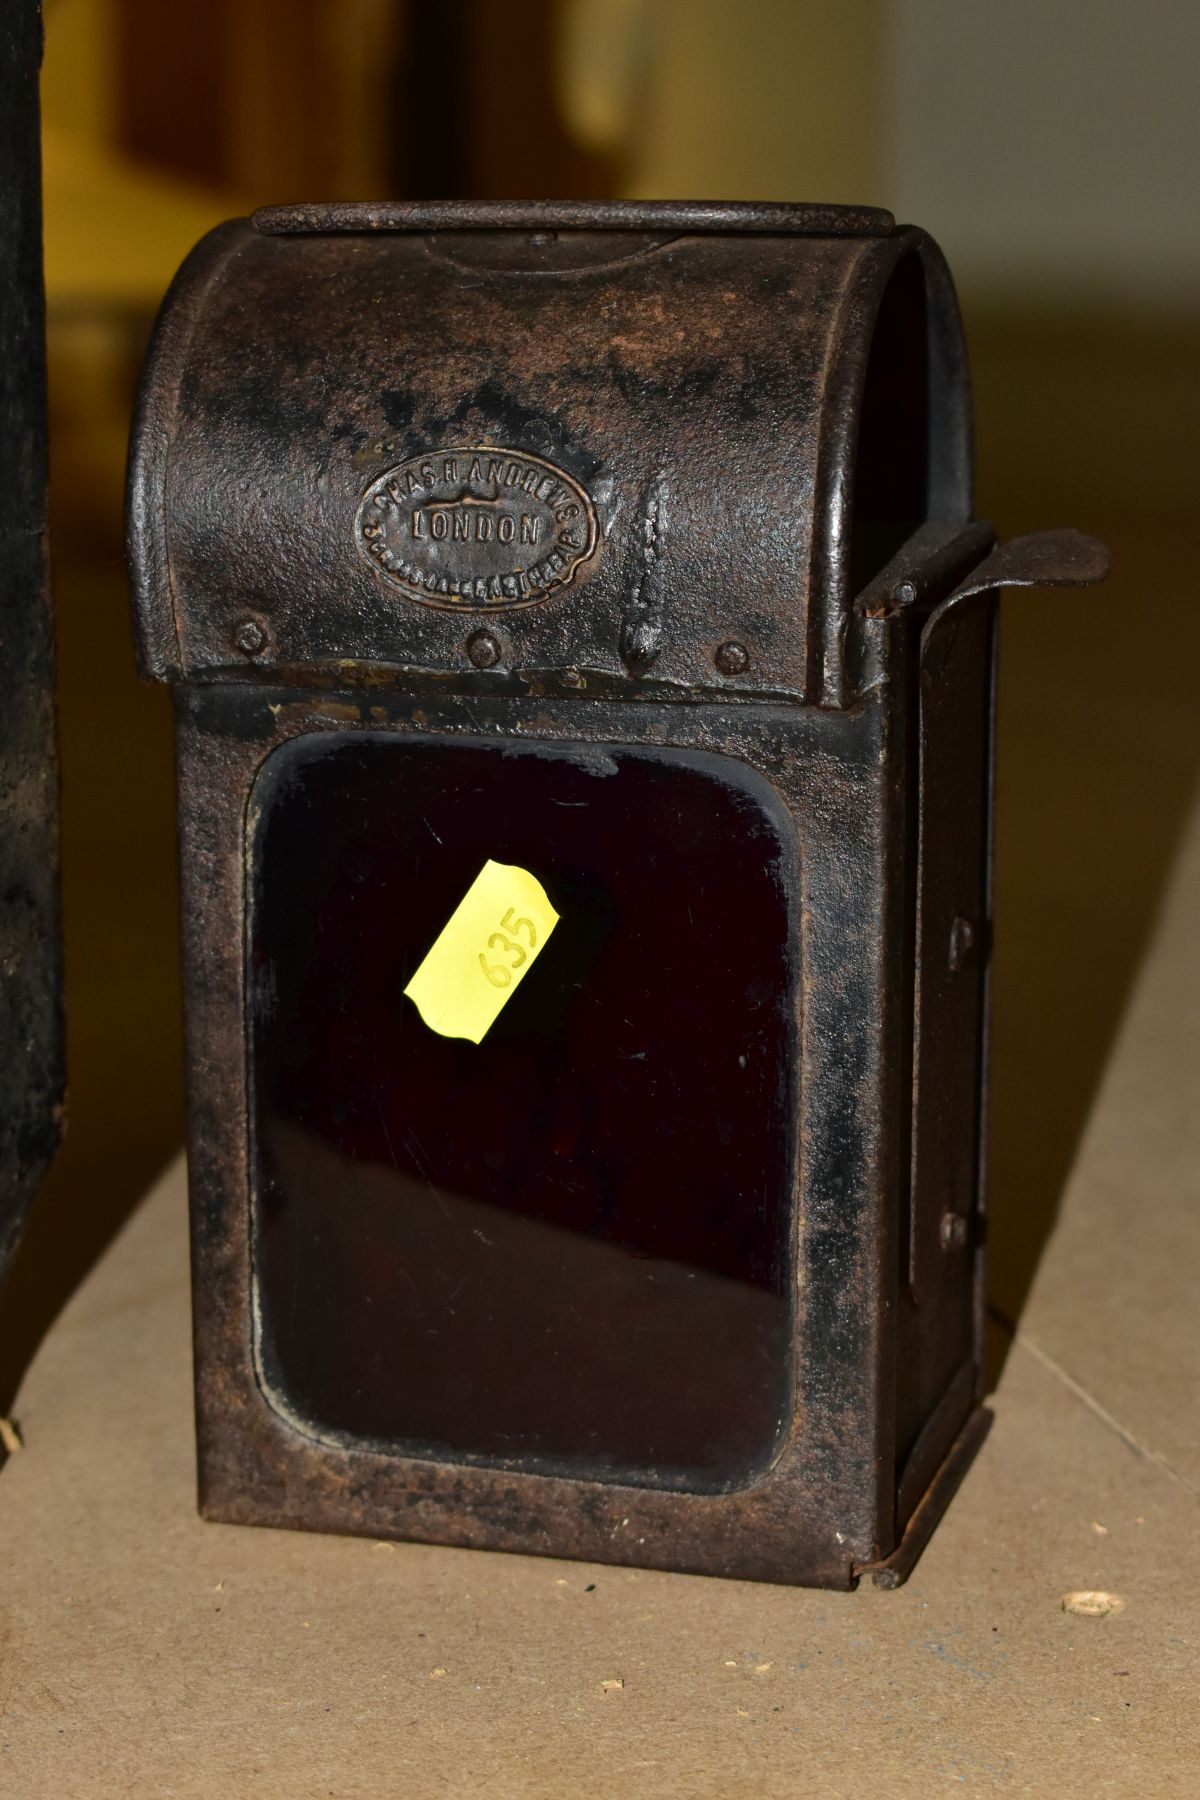 AN ADLAKE NO. 55 RAILWAY LAMP, black painted body with clear bulls eye lens, complete with lift - Image 4 of 8